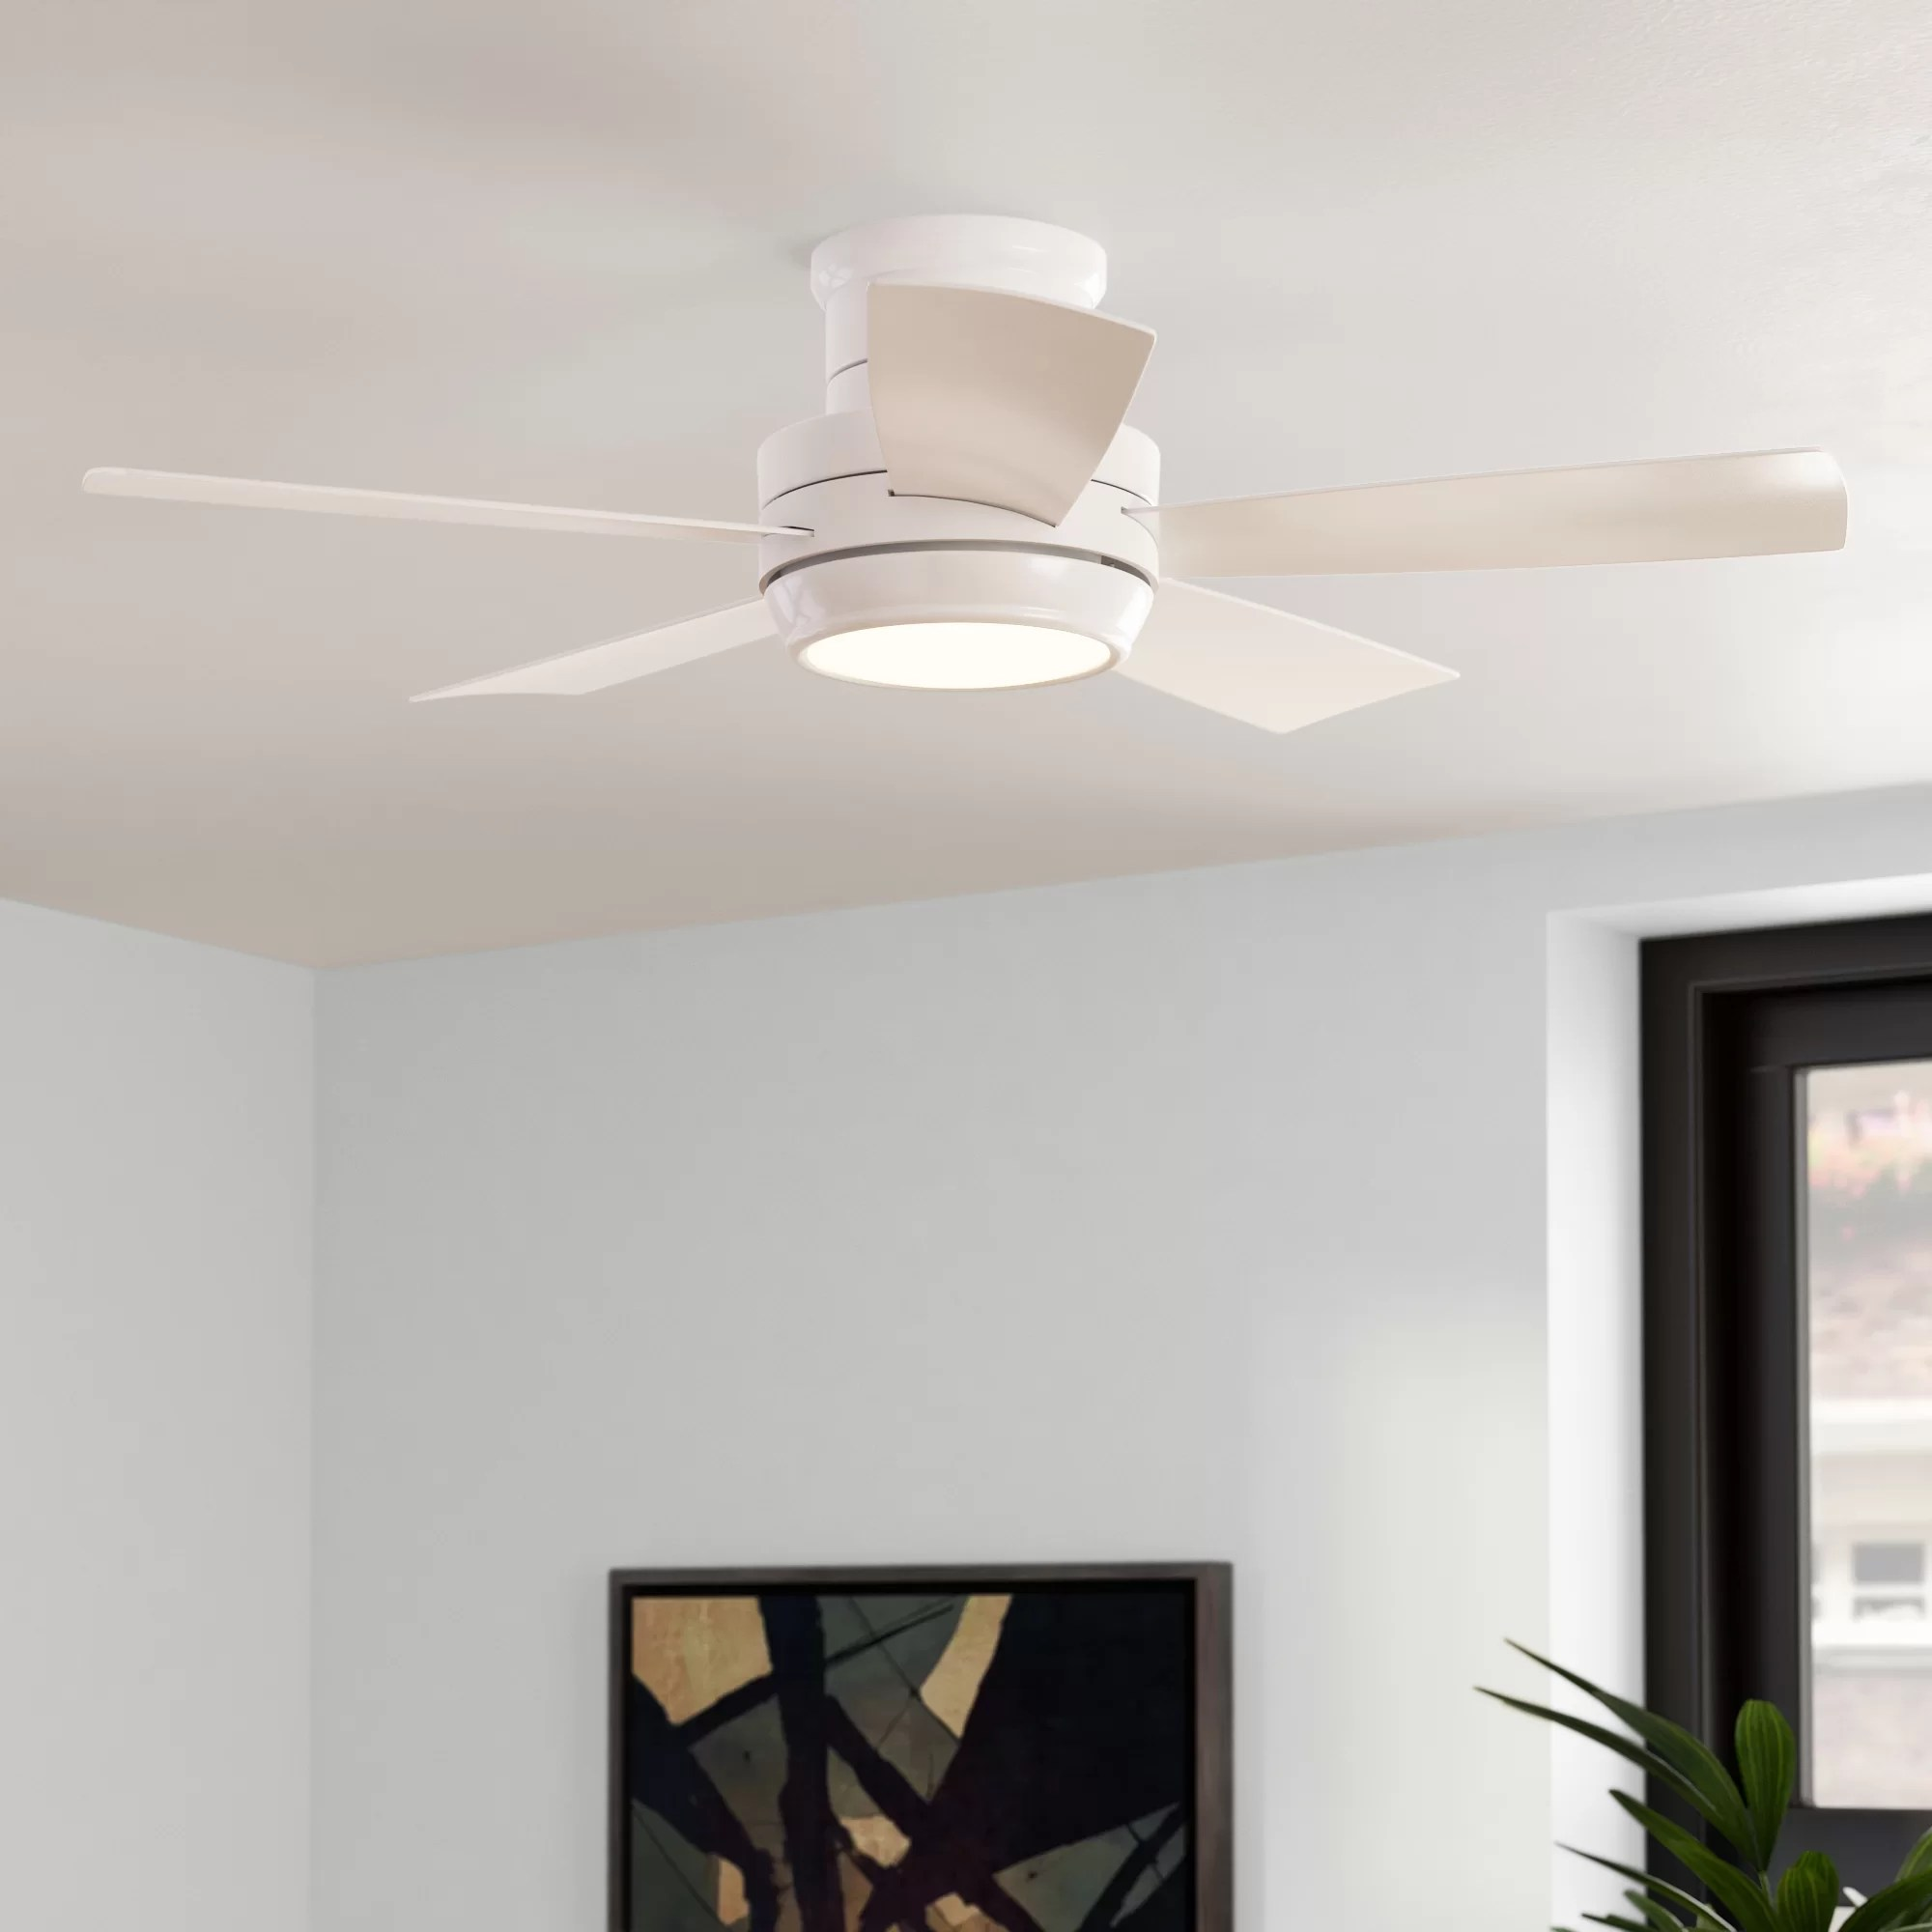 Ceiling Fan Design 44